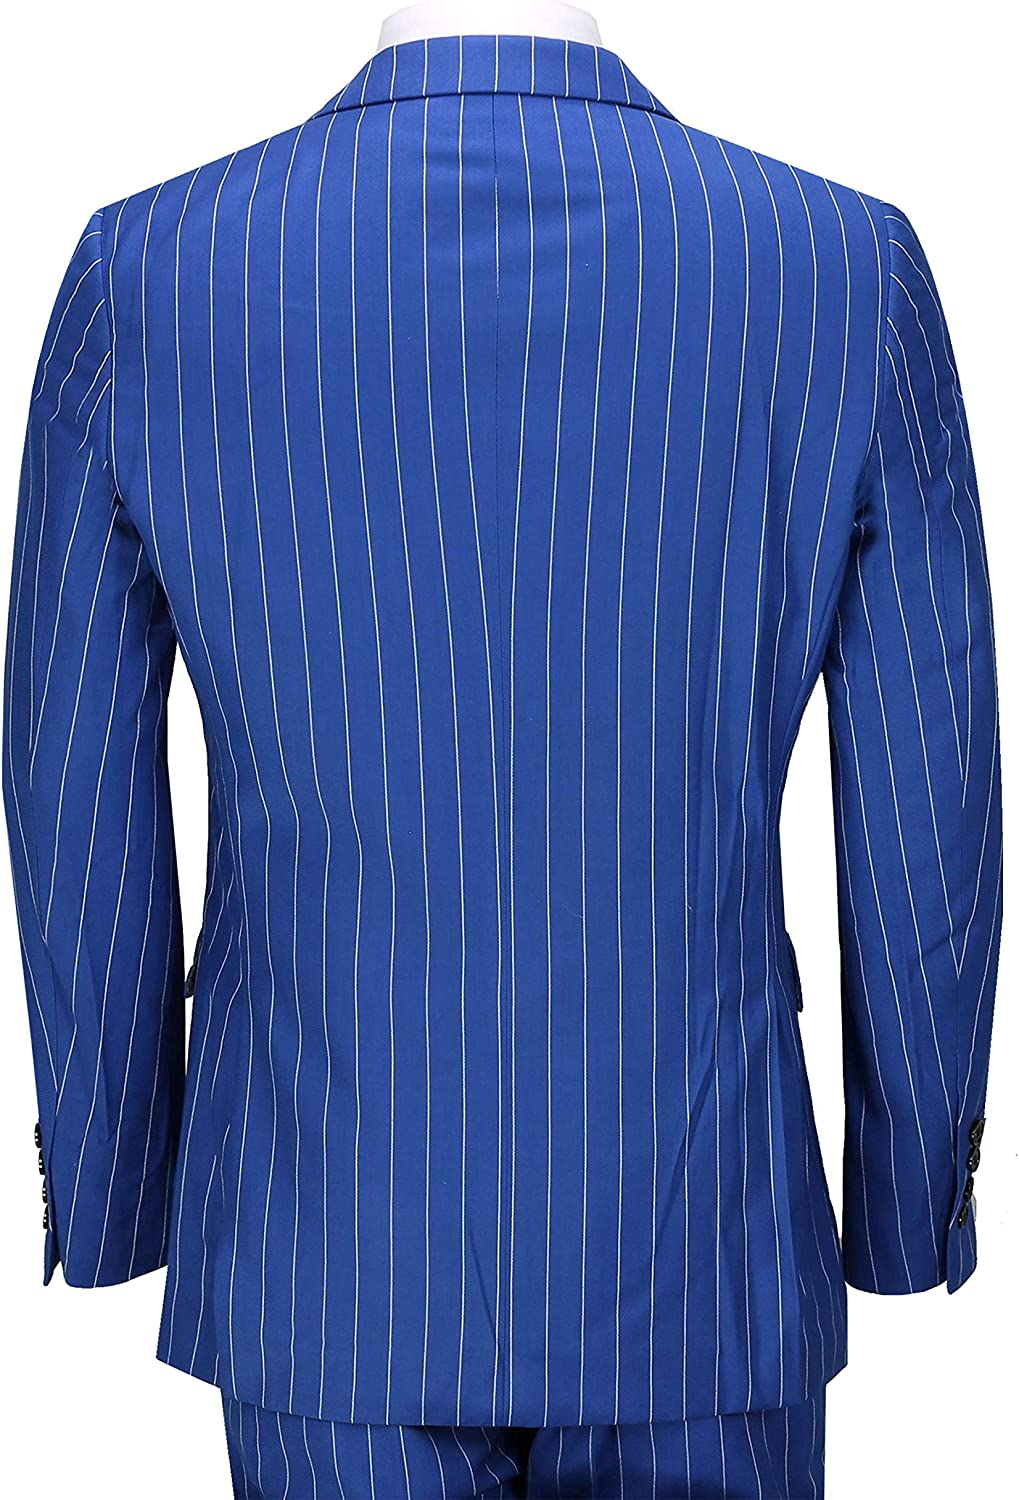 Mens 3 Piece White Pin Stripe on Royal Blue Suit Retro 1920s Peaky Blinders Tailored Fit